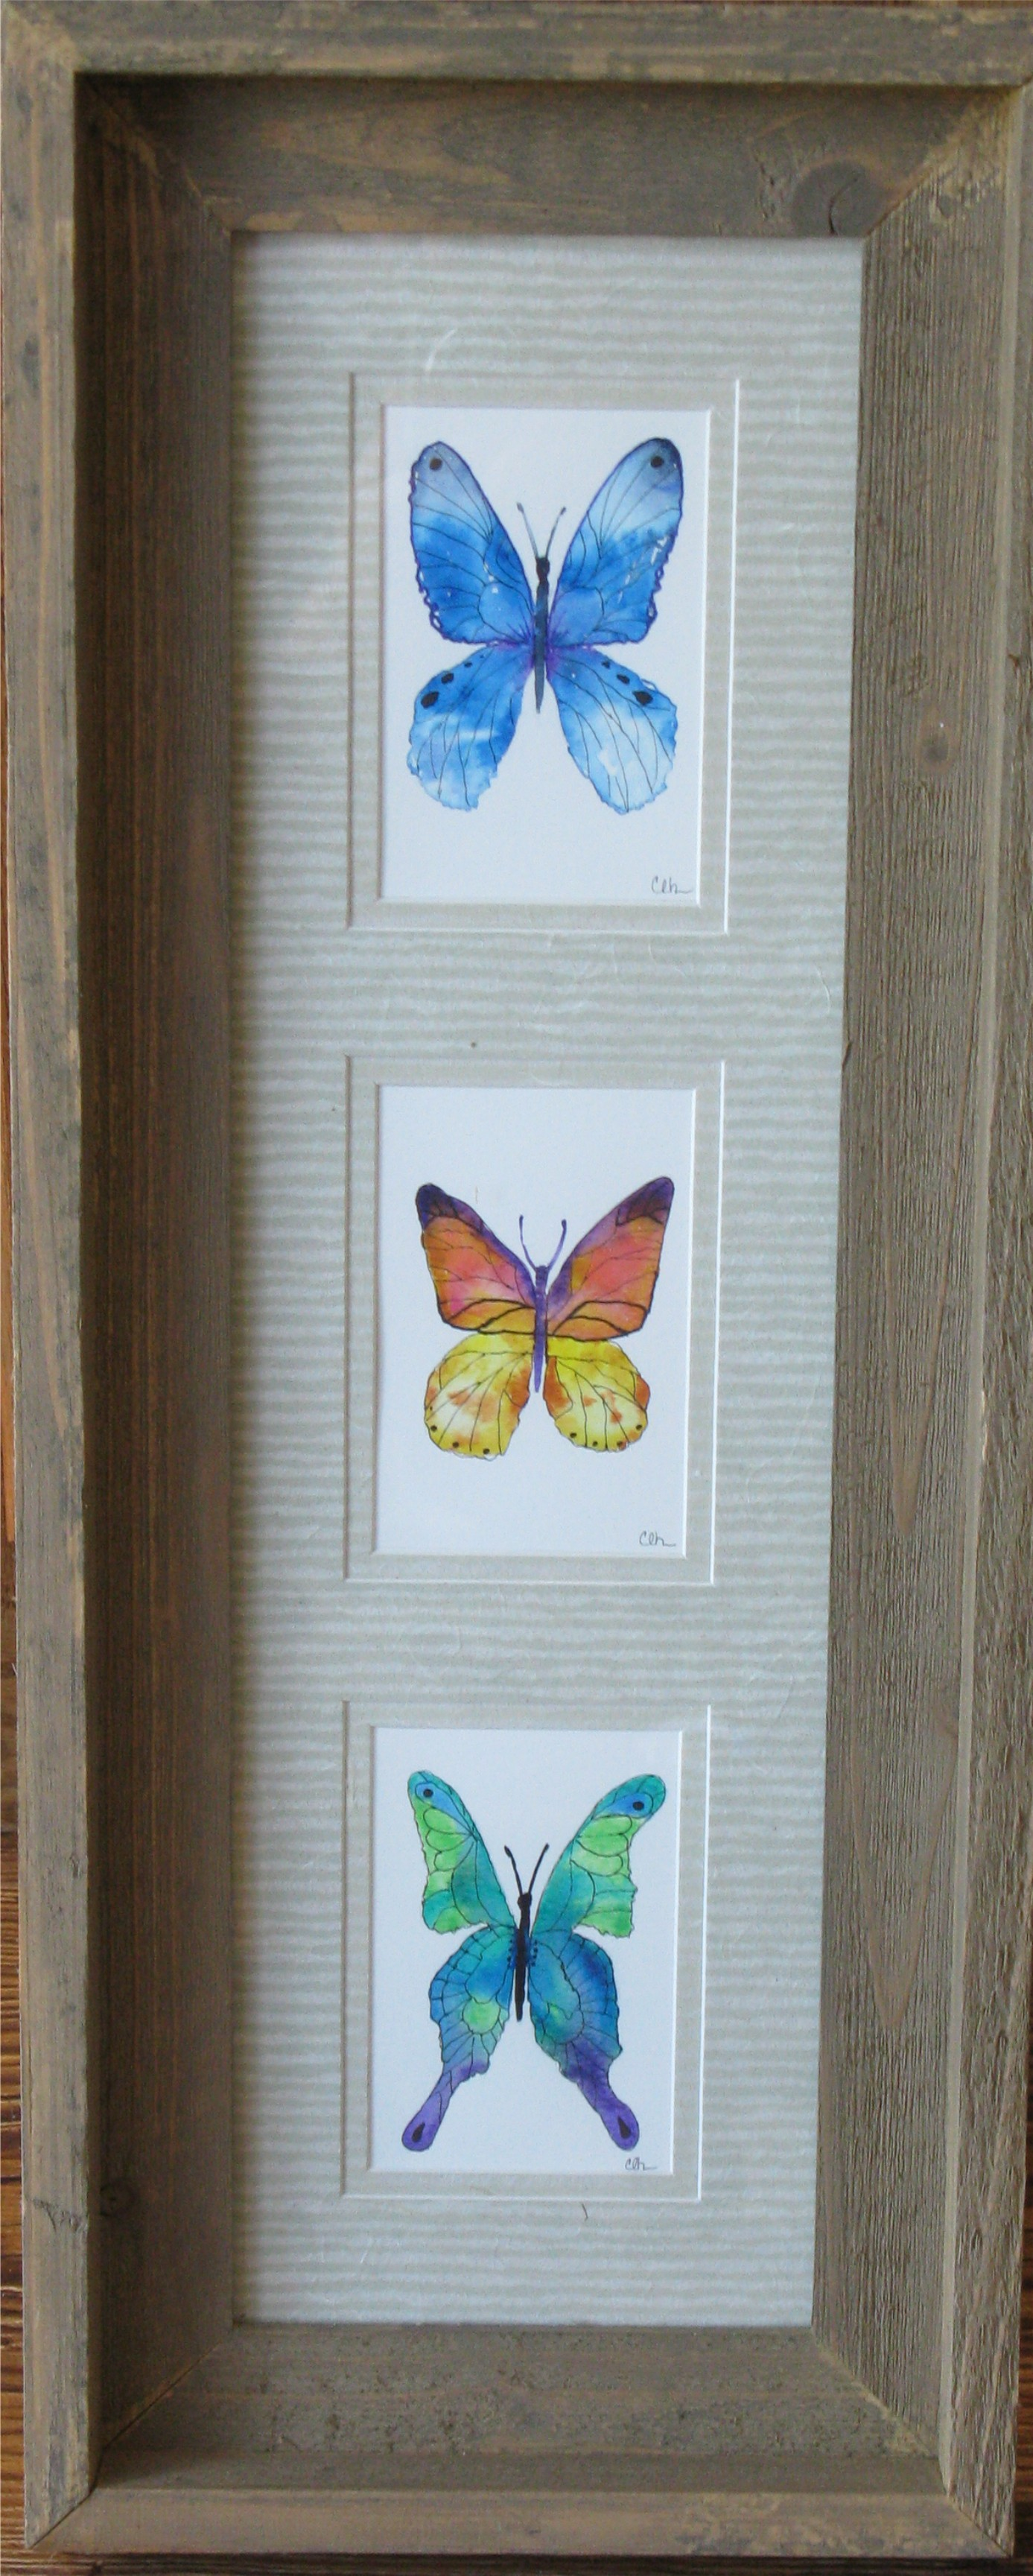 Watercolors/butterflies.JPG